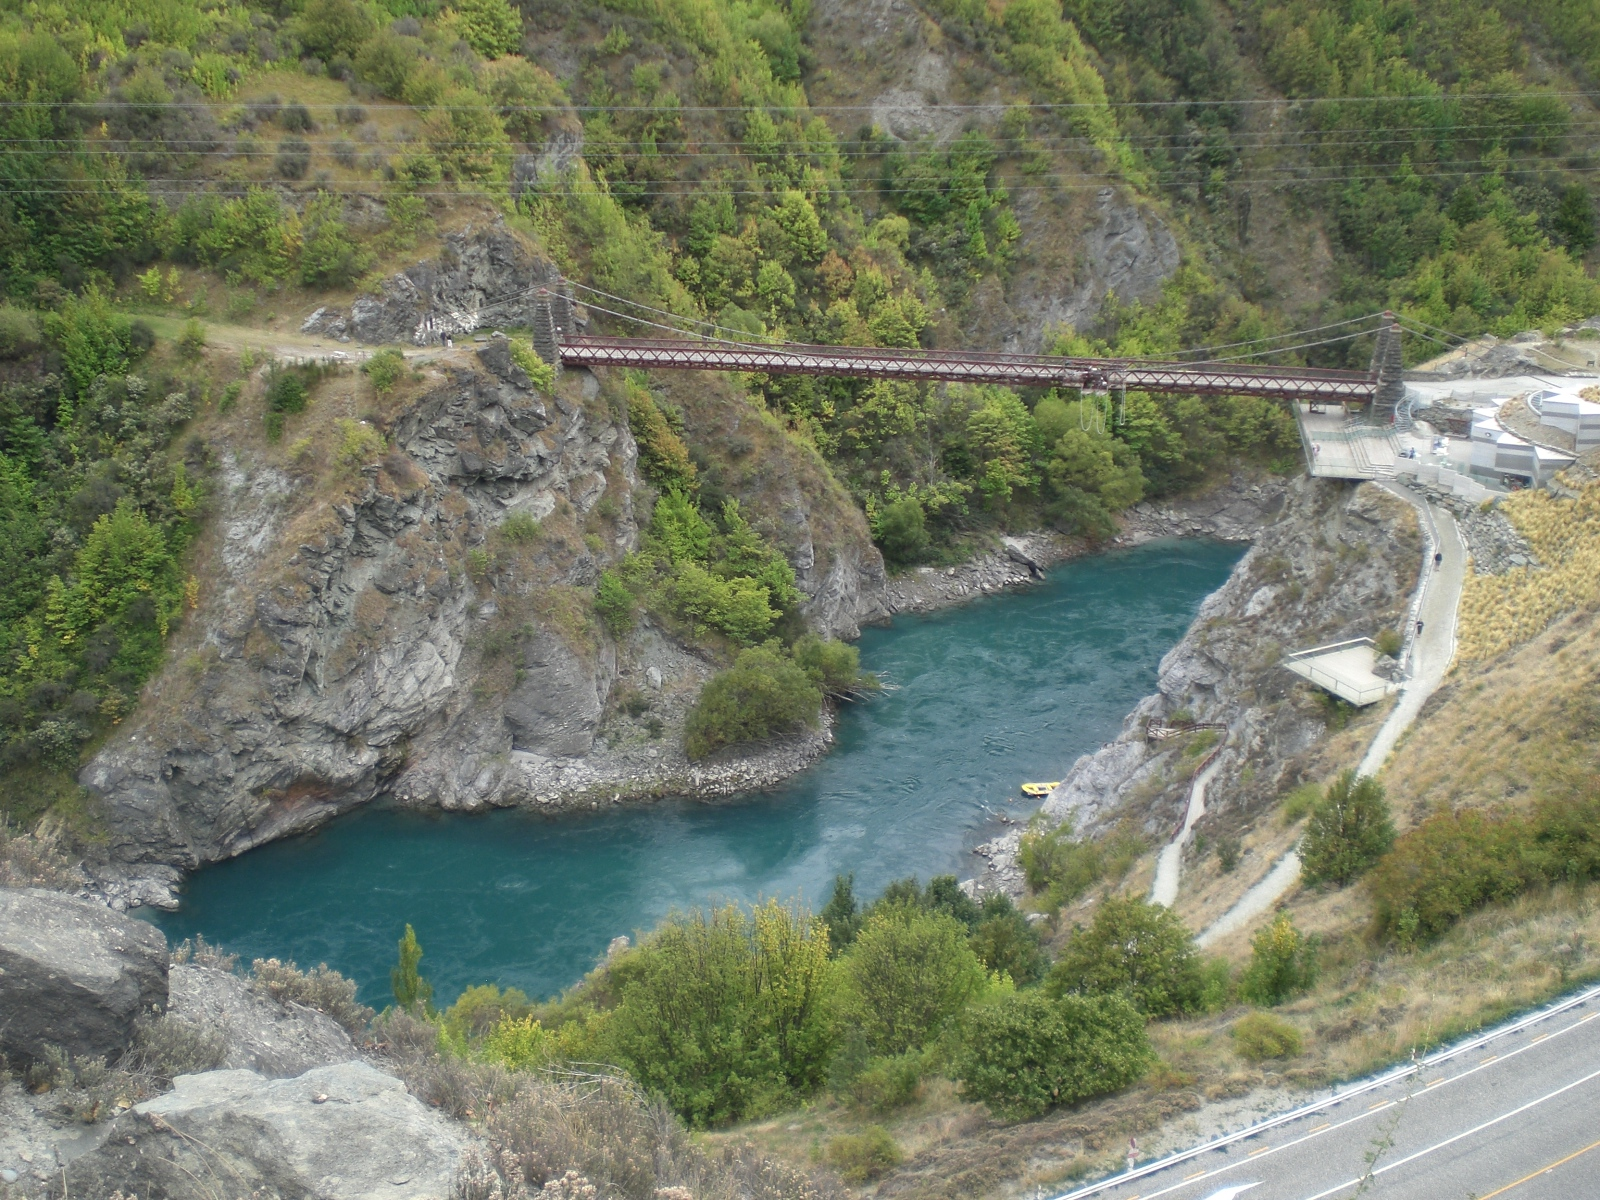 Trift Bridge, Elveţia